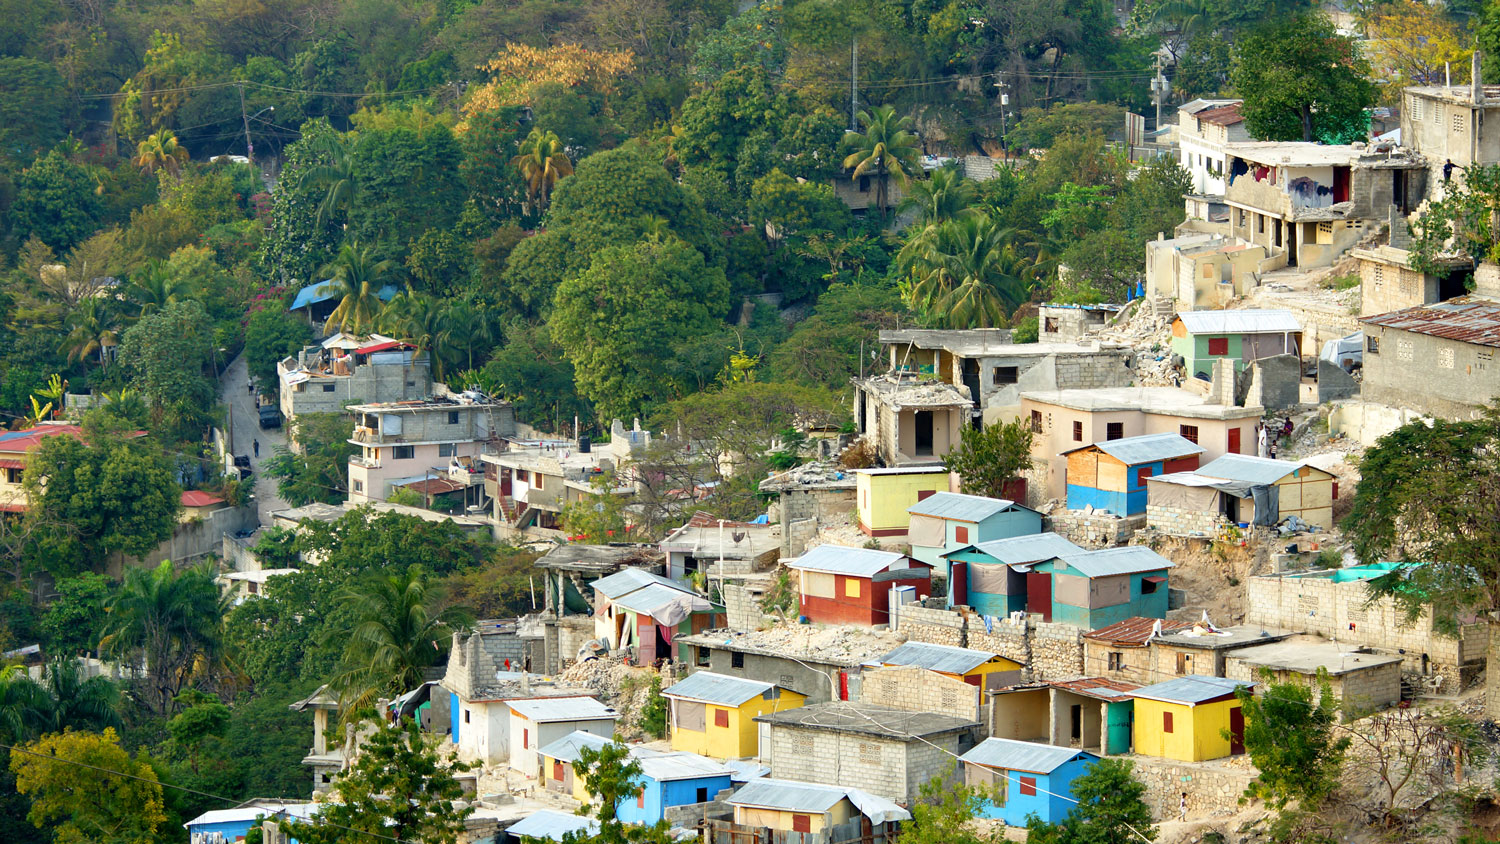 "<div class=""meta image-caption""><div class=""origin-logo origin-image none""><span>none</span></div><span class=""caption-text"">Buildings sit on a hill in a rural town of Haiti. (Shutterstock)</span></div>"